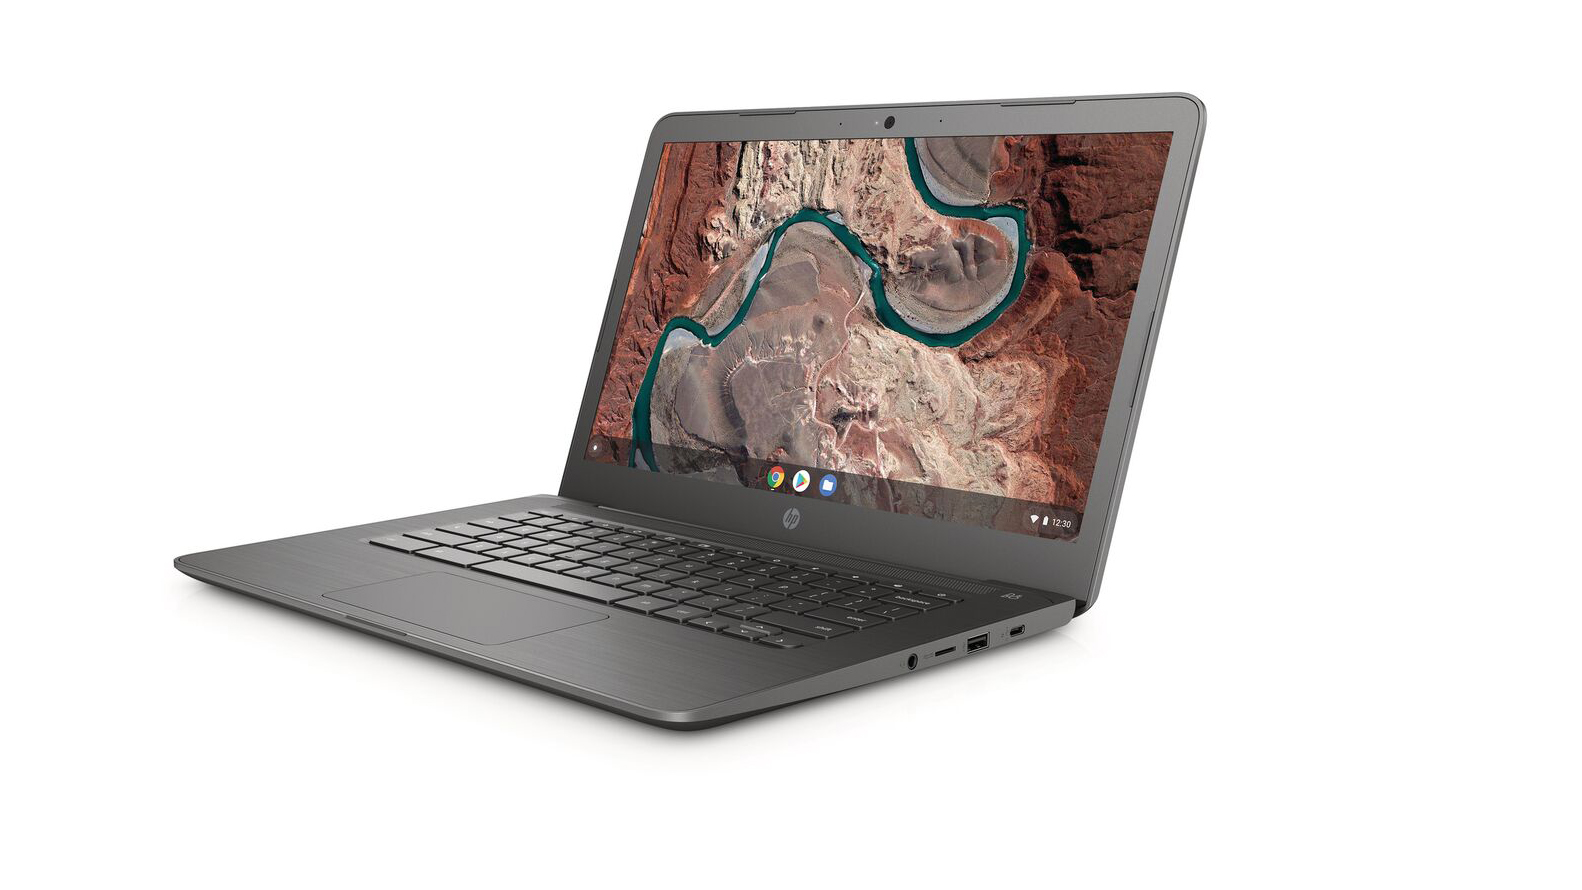 The new HP Chromebook 14.